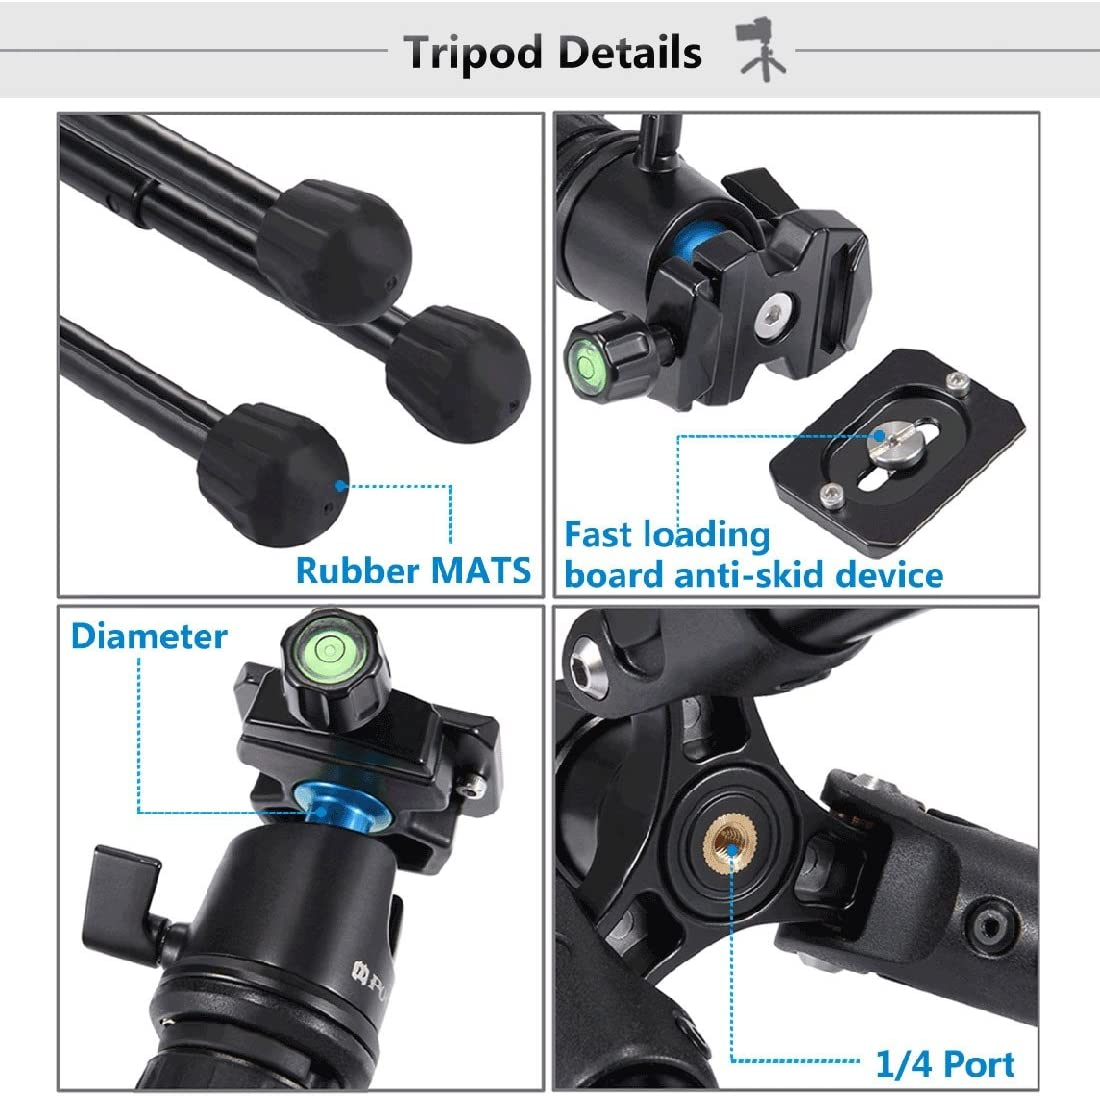 Load Max Adjustable Height 3Kg 24.5-57Cm RYSD-MT Pocket Mini Photos Magnesium Alloy Tripod Mount with 360 Degree Ball Head for Digital Camera